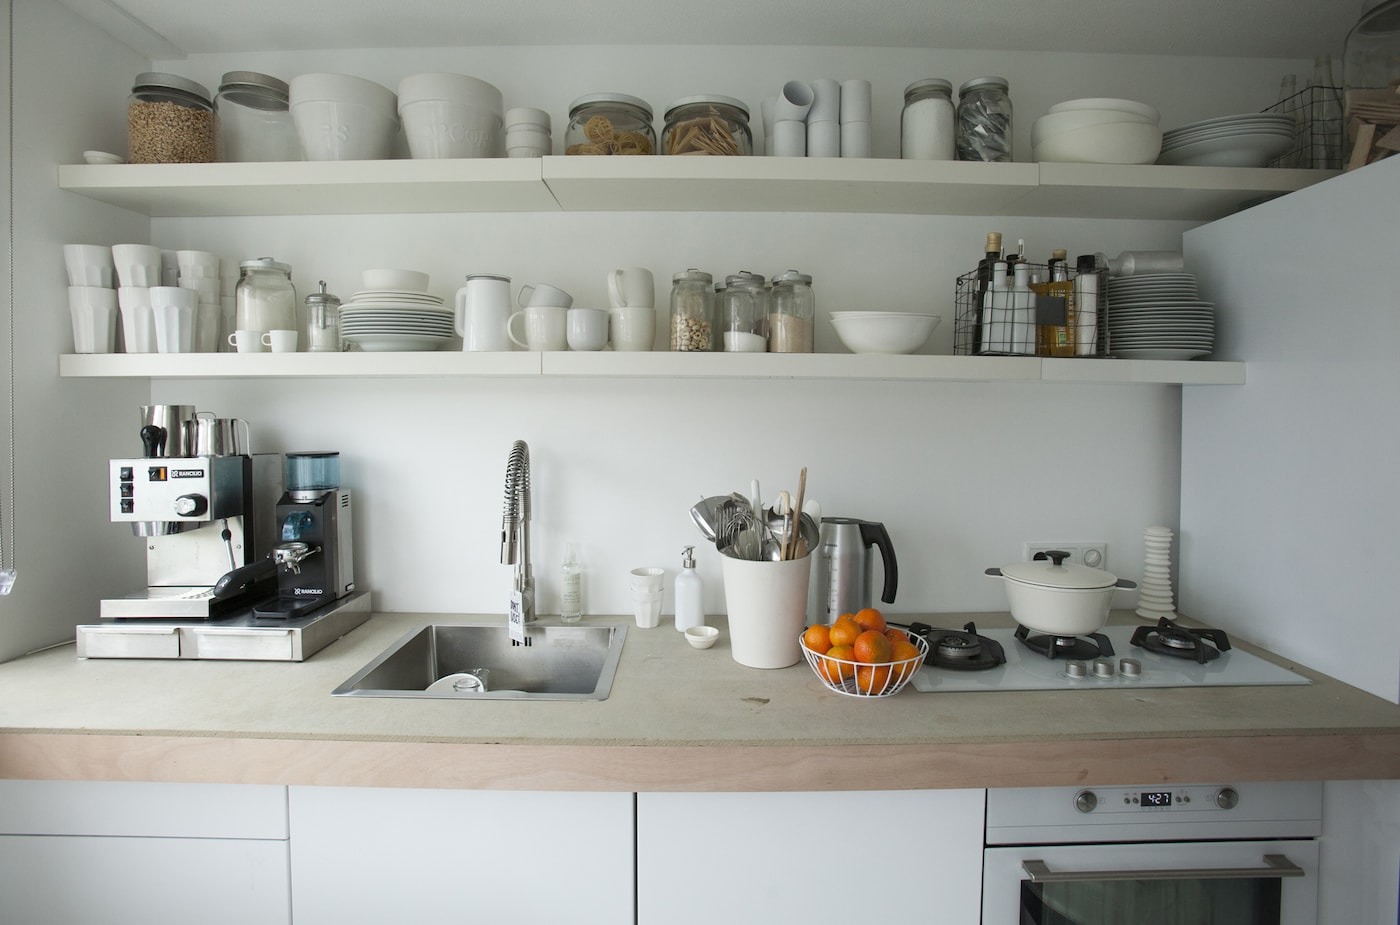 Beau Inspiration For A Small Kitchen   IKEA